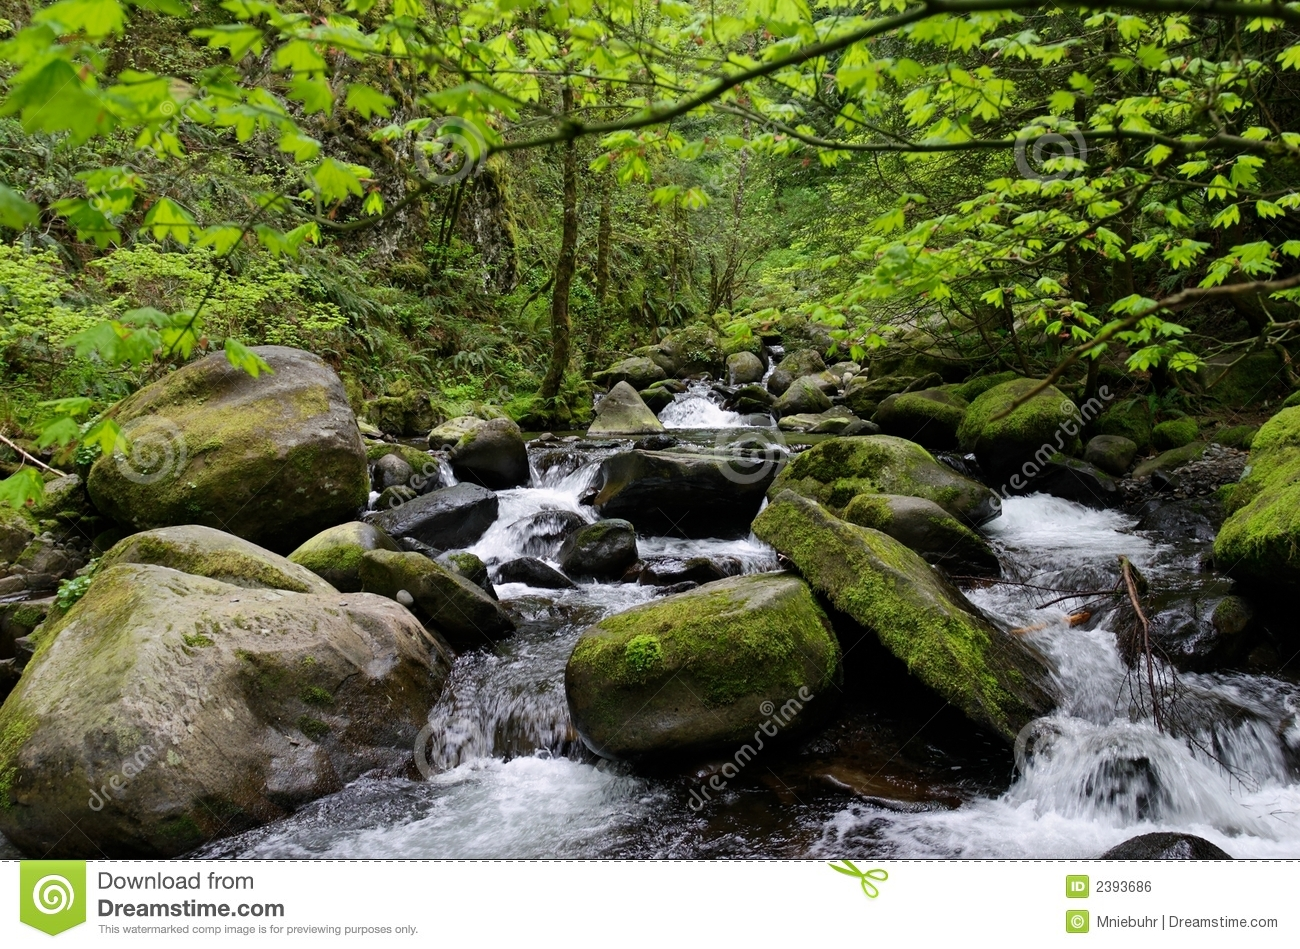 ... Stones In A Mountain Stream Royalty Free Stock Image - Image: 2393686